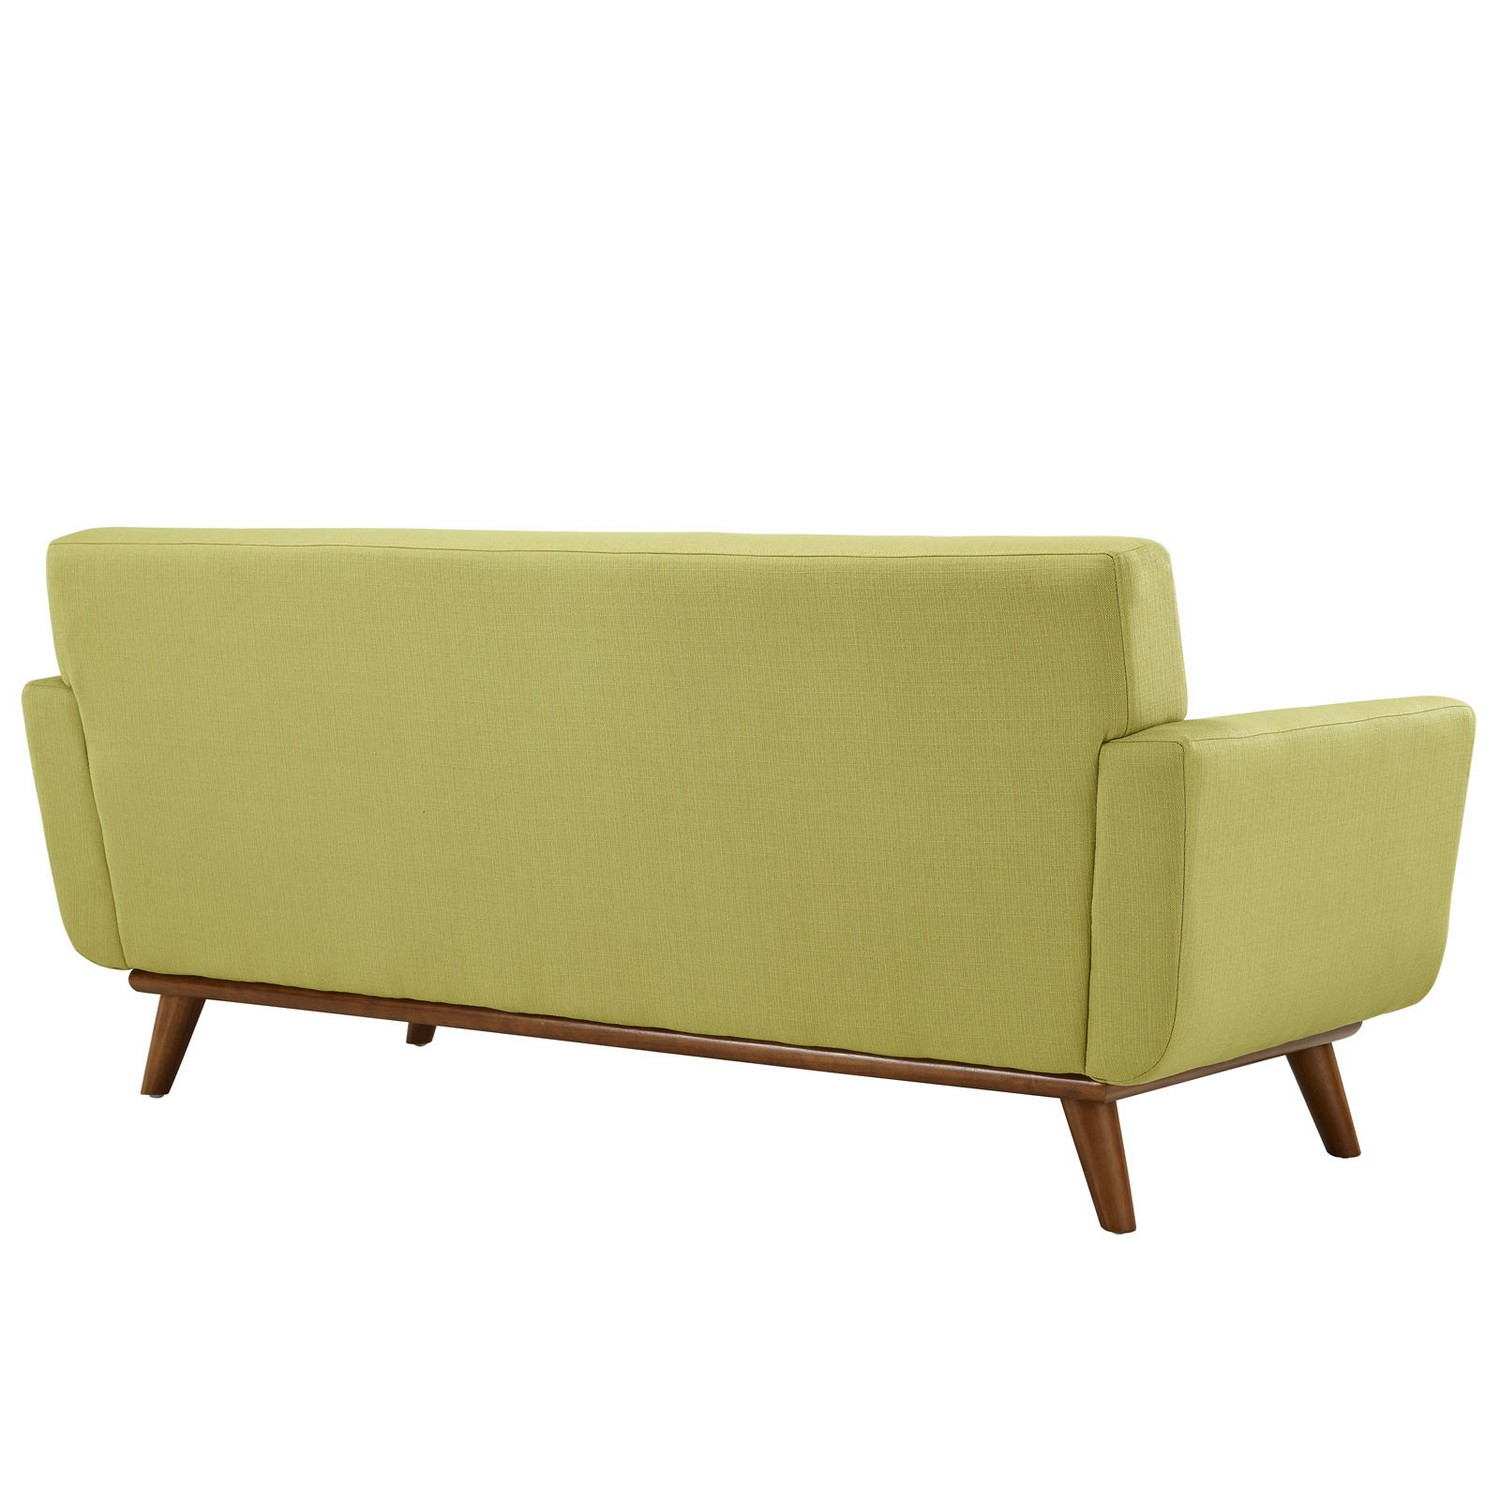 Modway Engage Loveseat and Sofa Set of 2 - Wheat